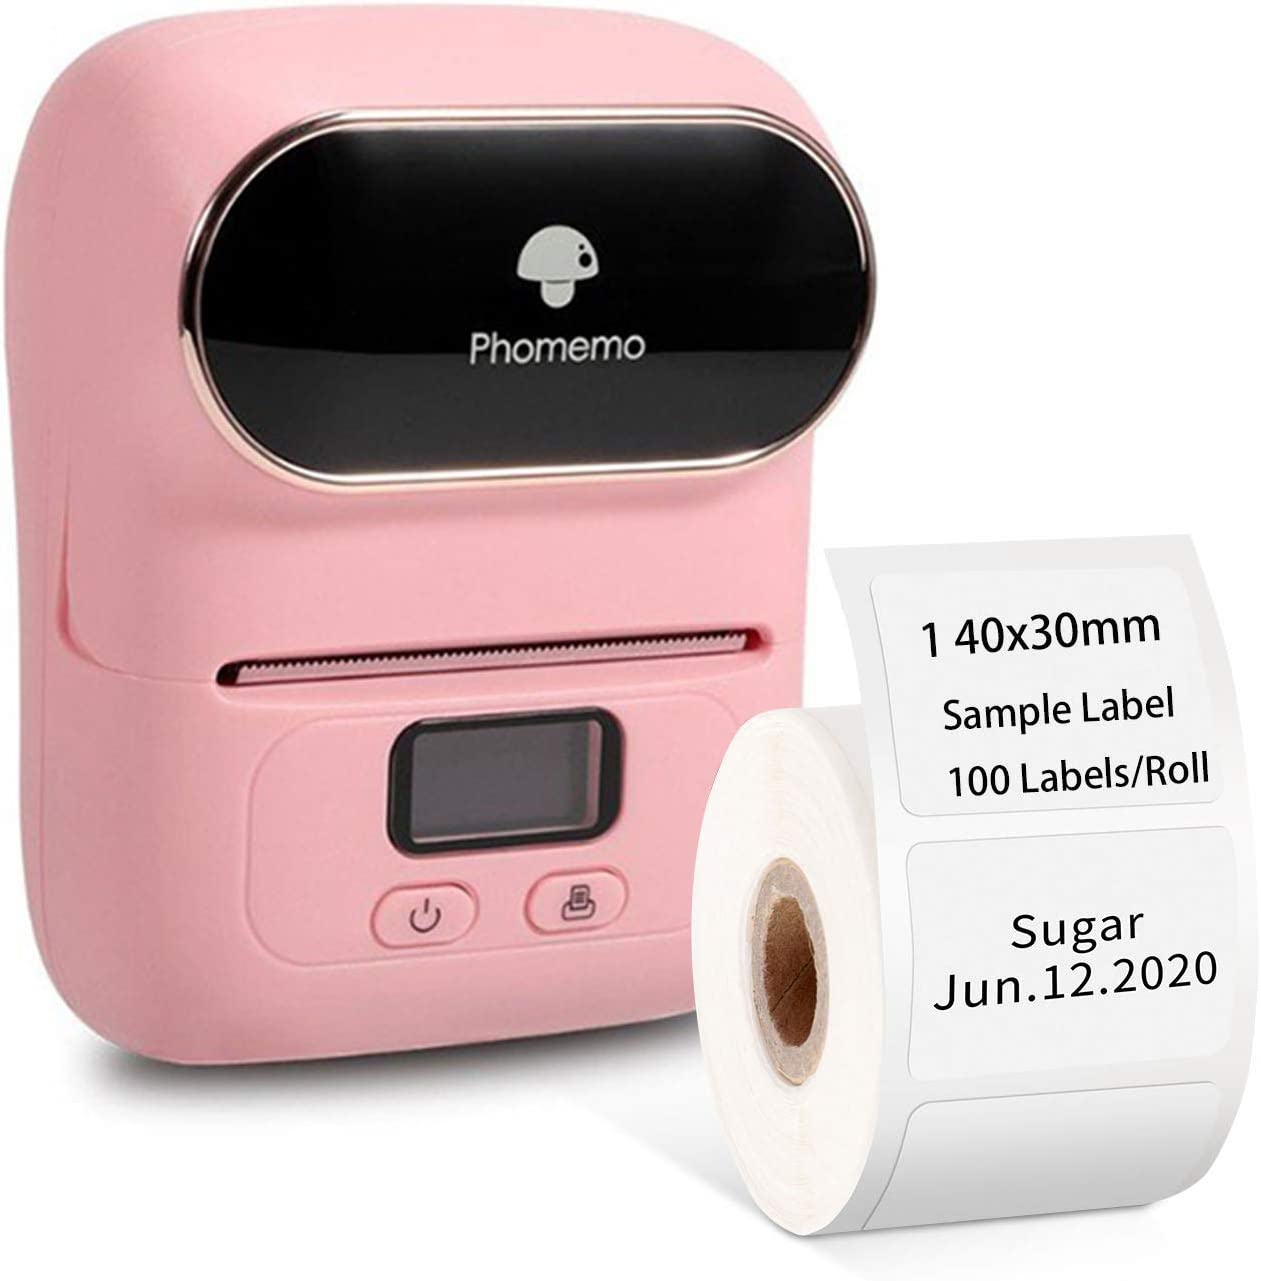 Phomemo-M110 Label Printer- Portable Mini Bluetooth Thermal Label Maker Apply to Labeling, Office, Cable, Retail, Barcode and More, Compatible with Android & iOS System, with 1 40×30mm Label, Pink